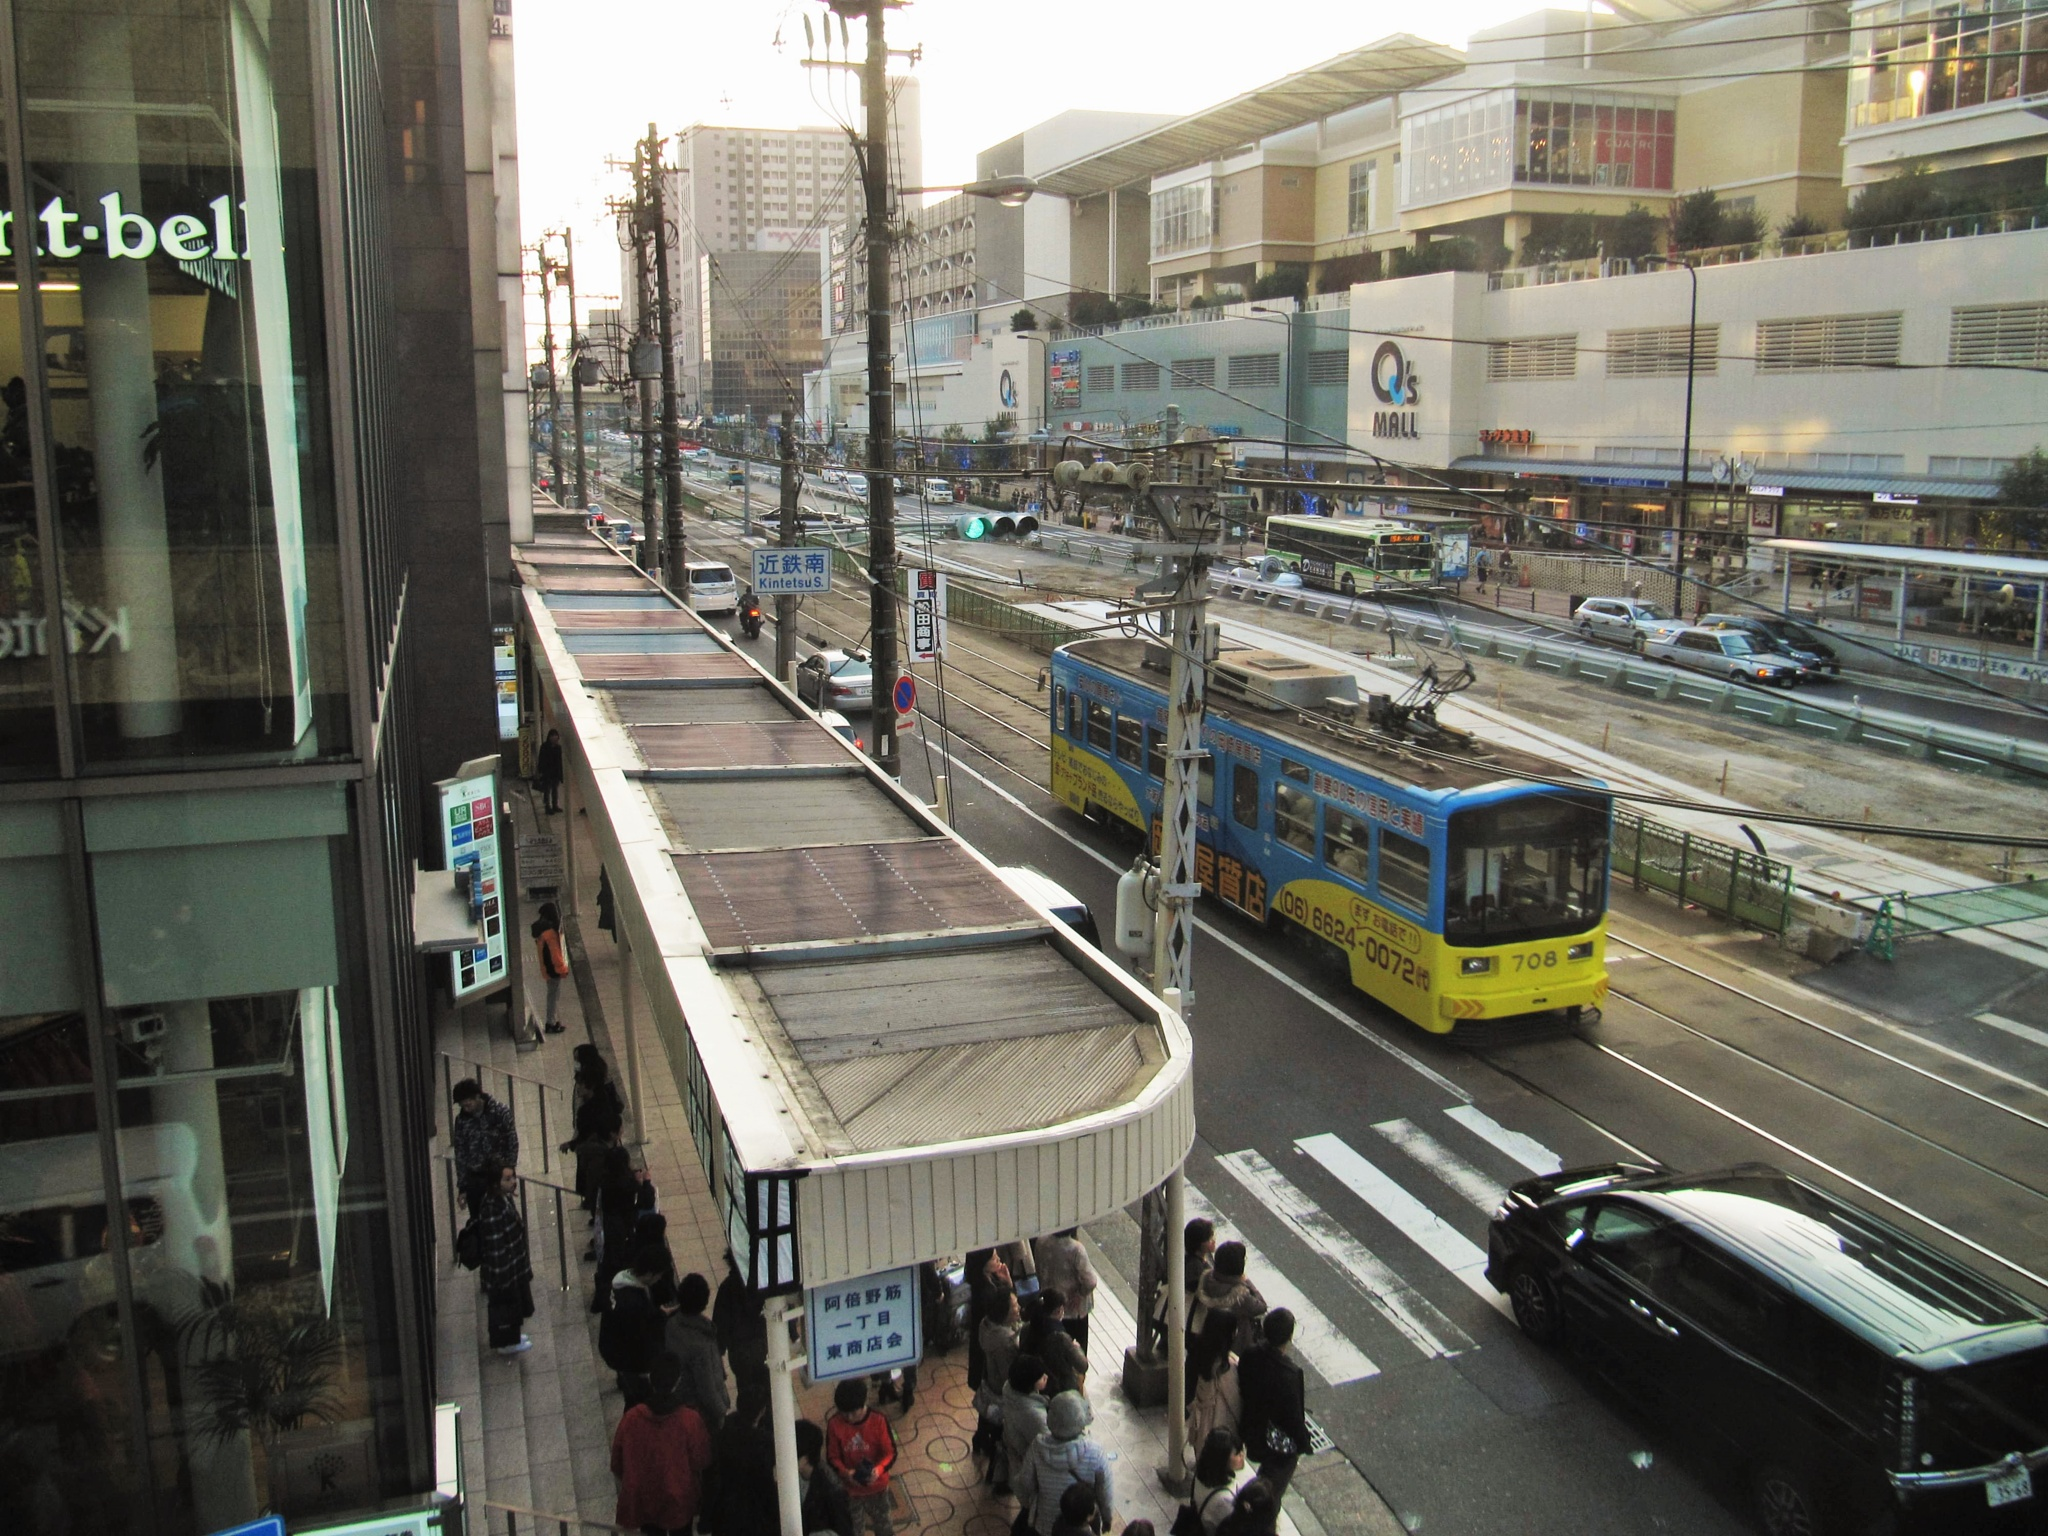 Look at the tram from the second floor by SANRI